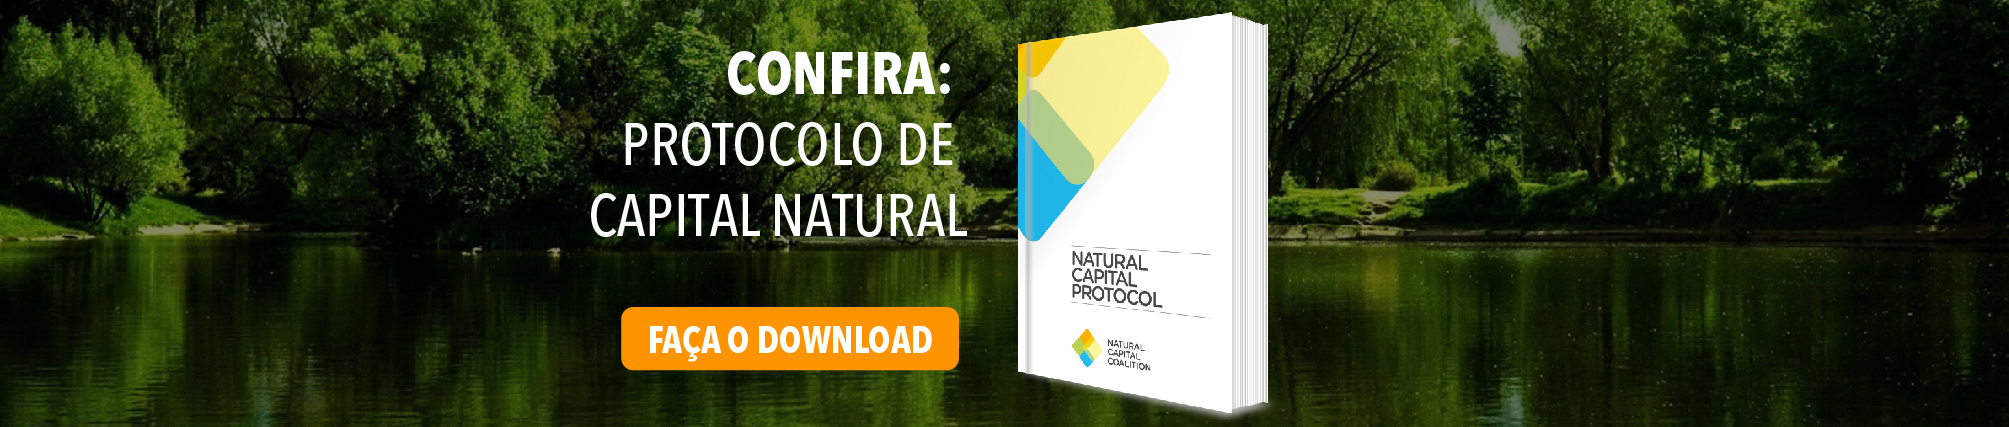 banner-protocolo de capital natural-01